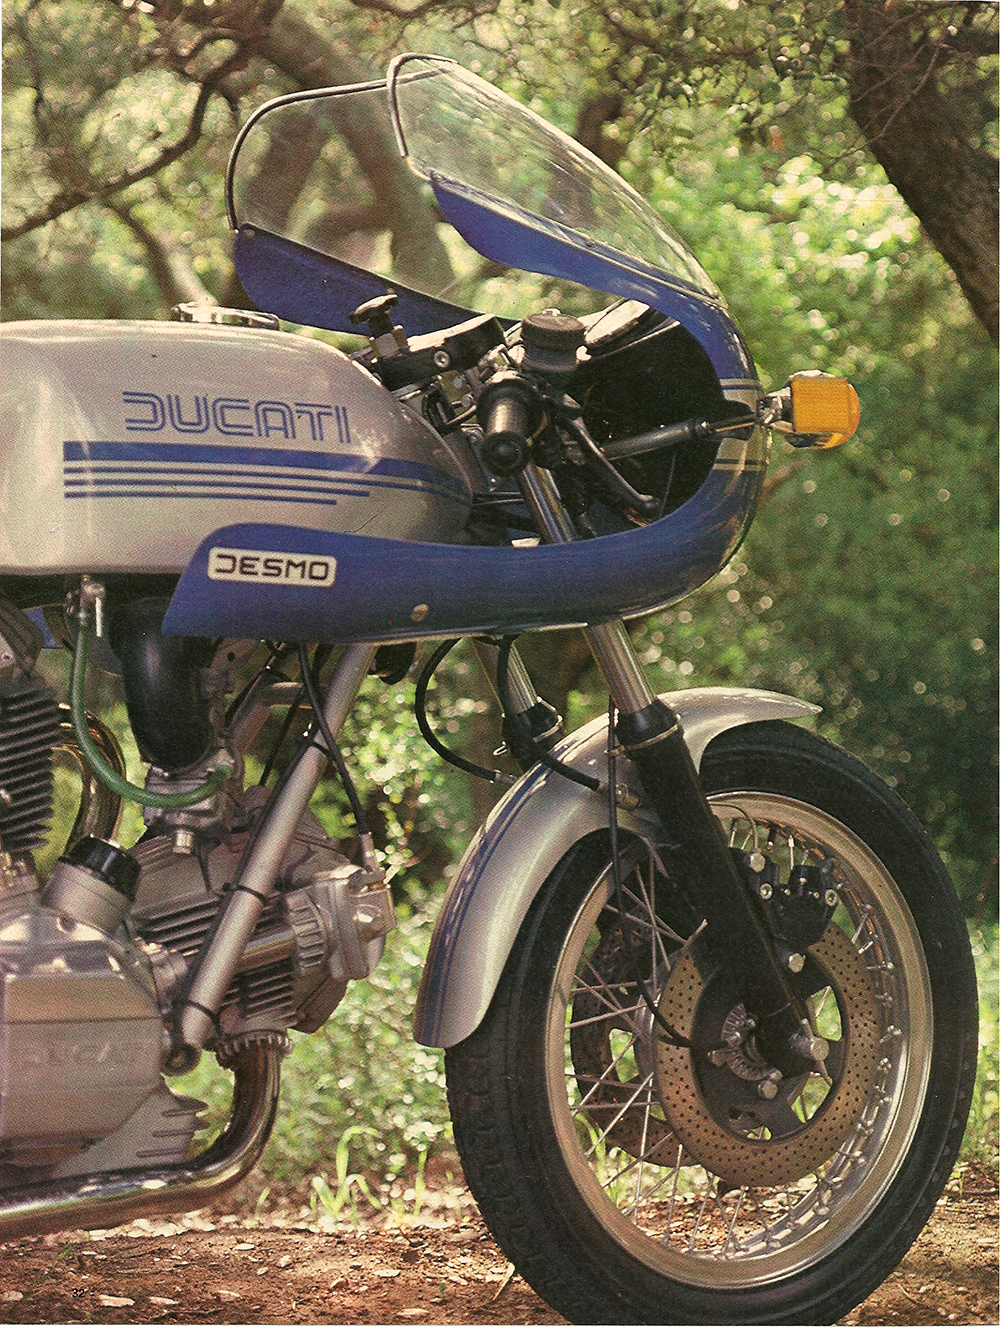 1978 Ducati Desmo 900 Super Sport road test 01.jpg